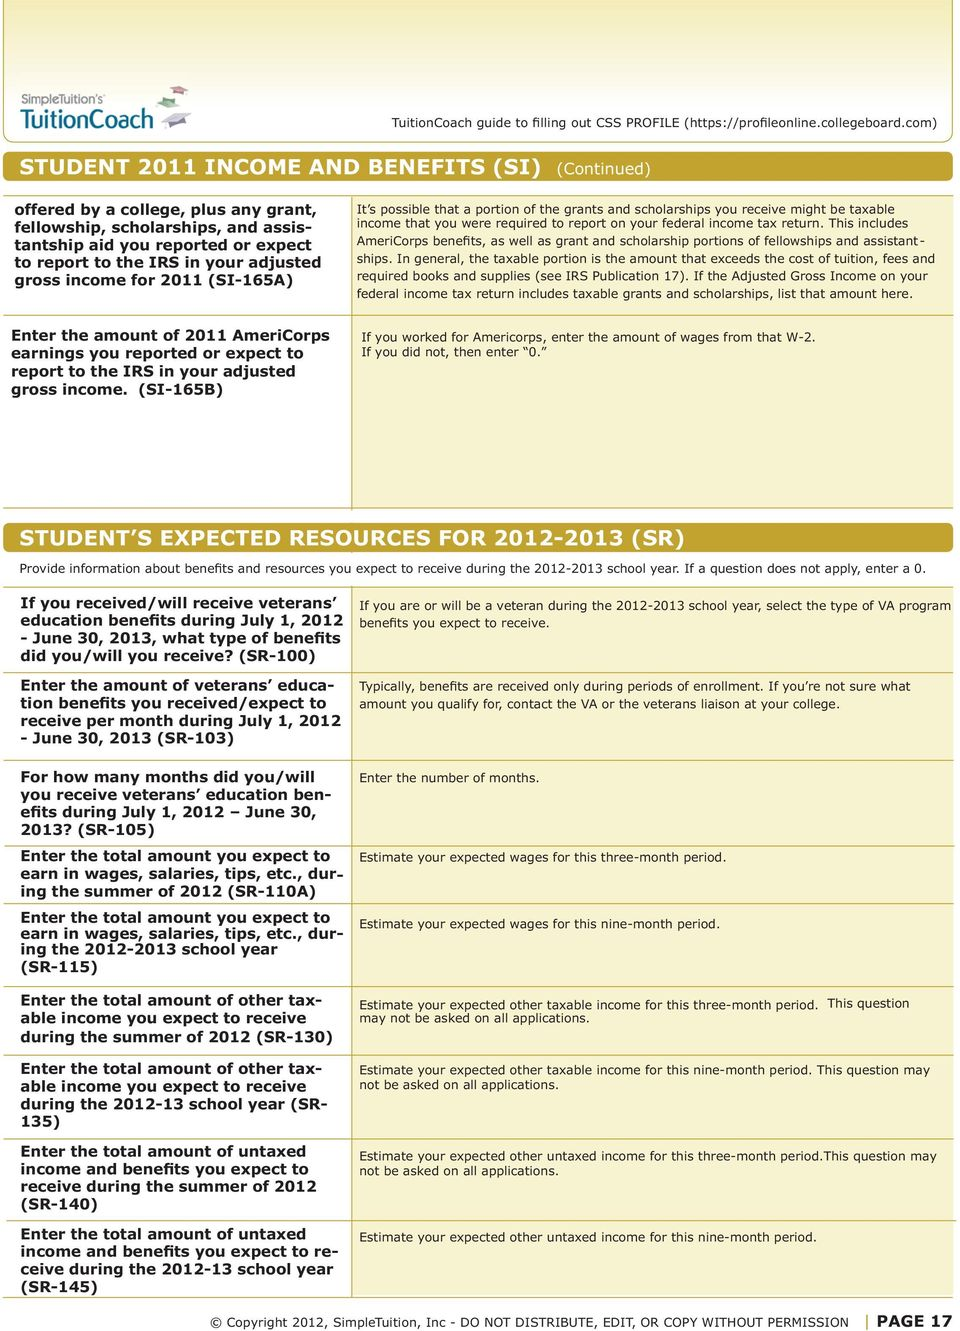 Worksheet guidelines why use this tool how does the css profile this includes americorps benefits as well as grant and scholarship portions of fellowships and assistantships falaconquin